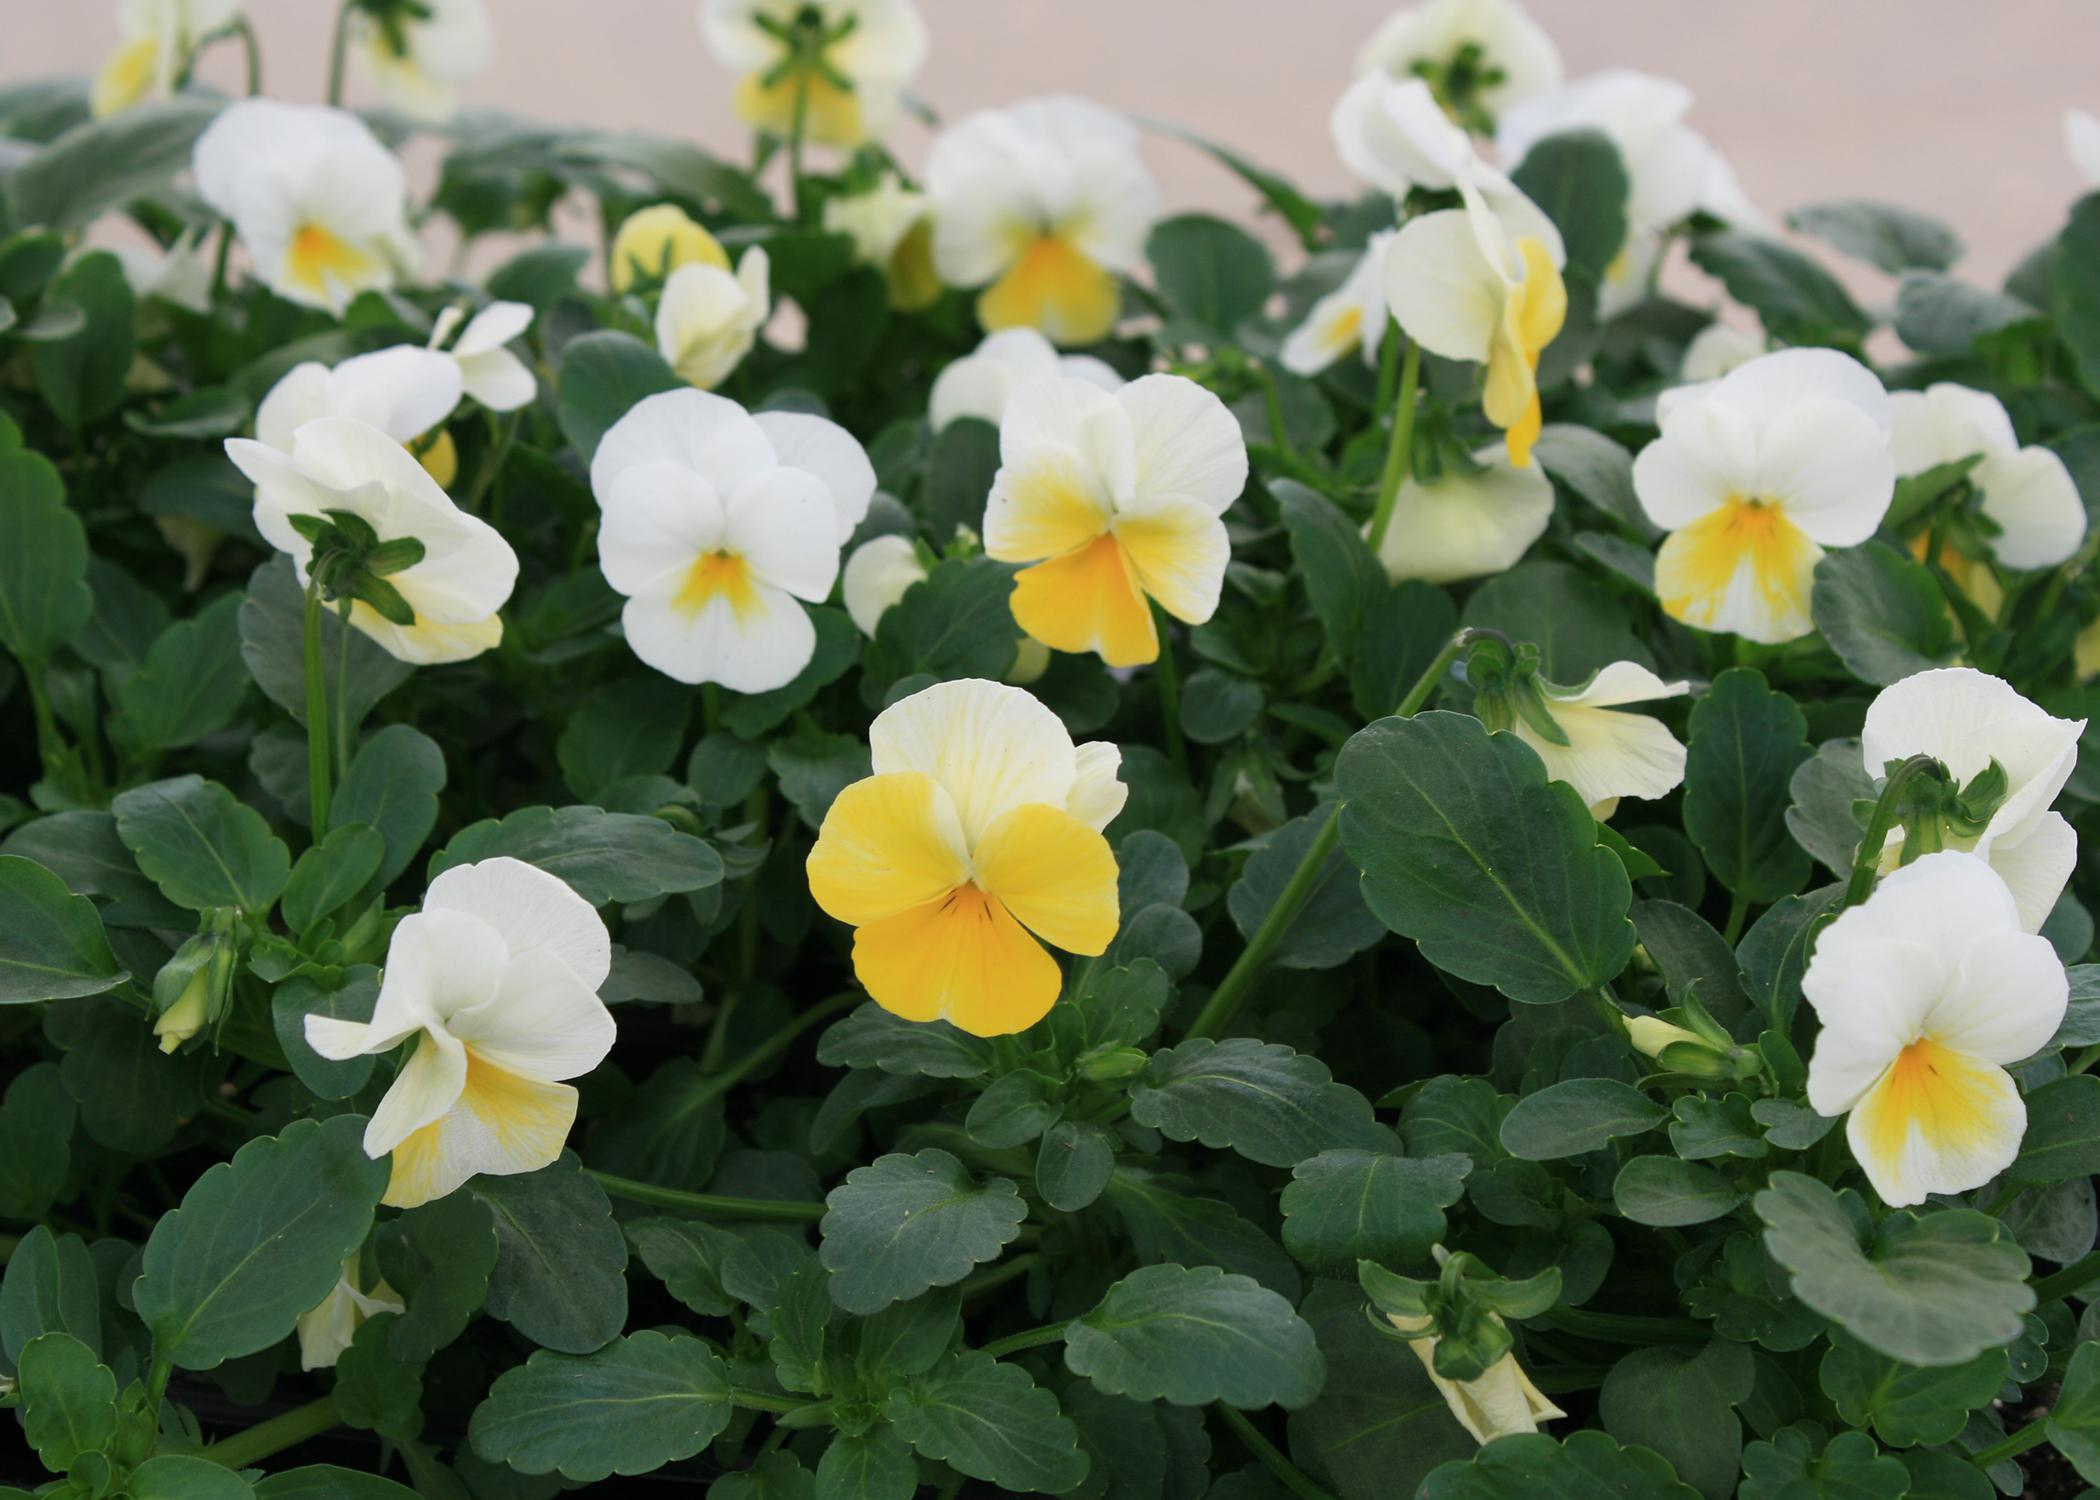 Flowers with white and yellow petals bloom above lush, green leaves.